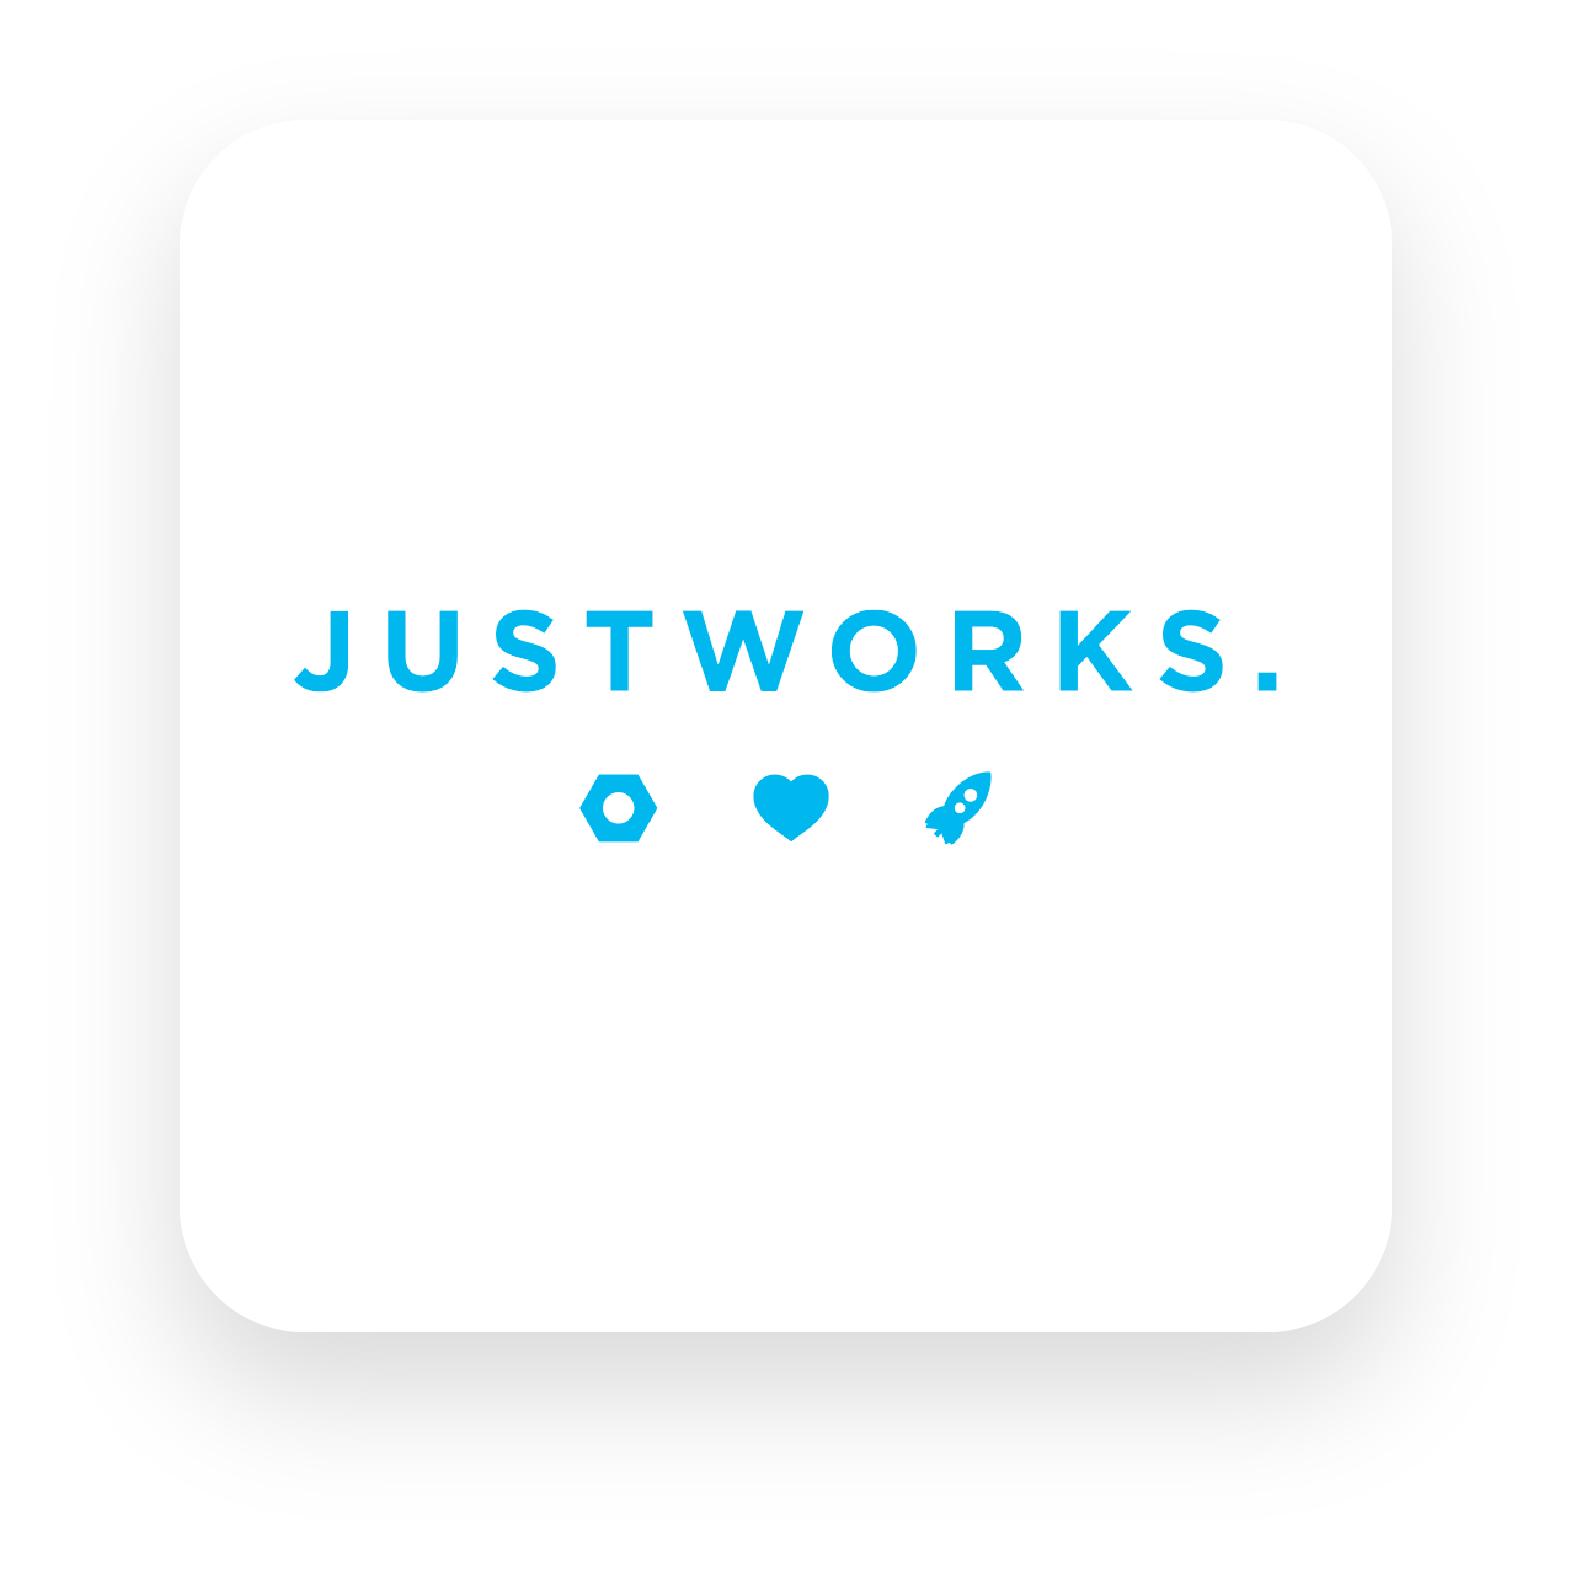 justworks@2x-8.png